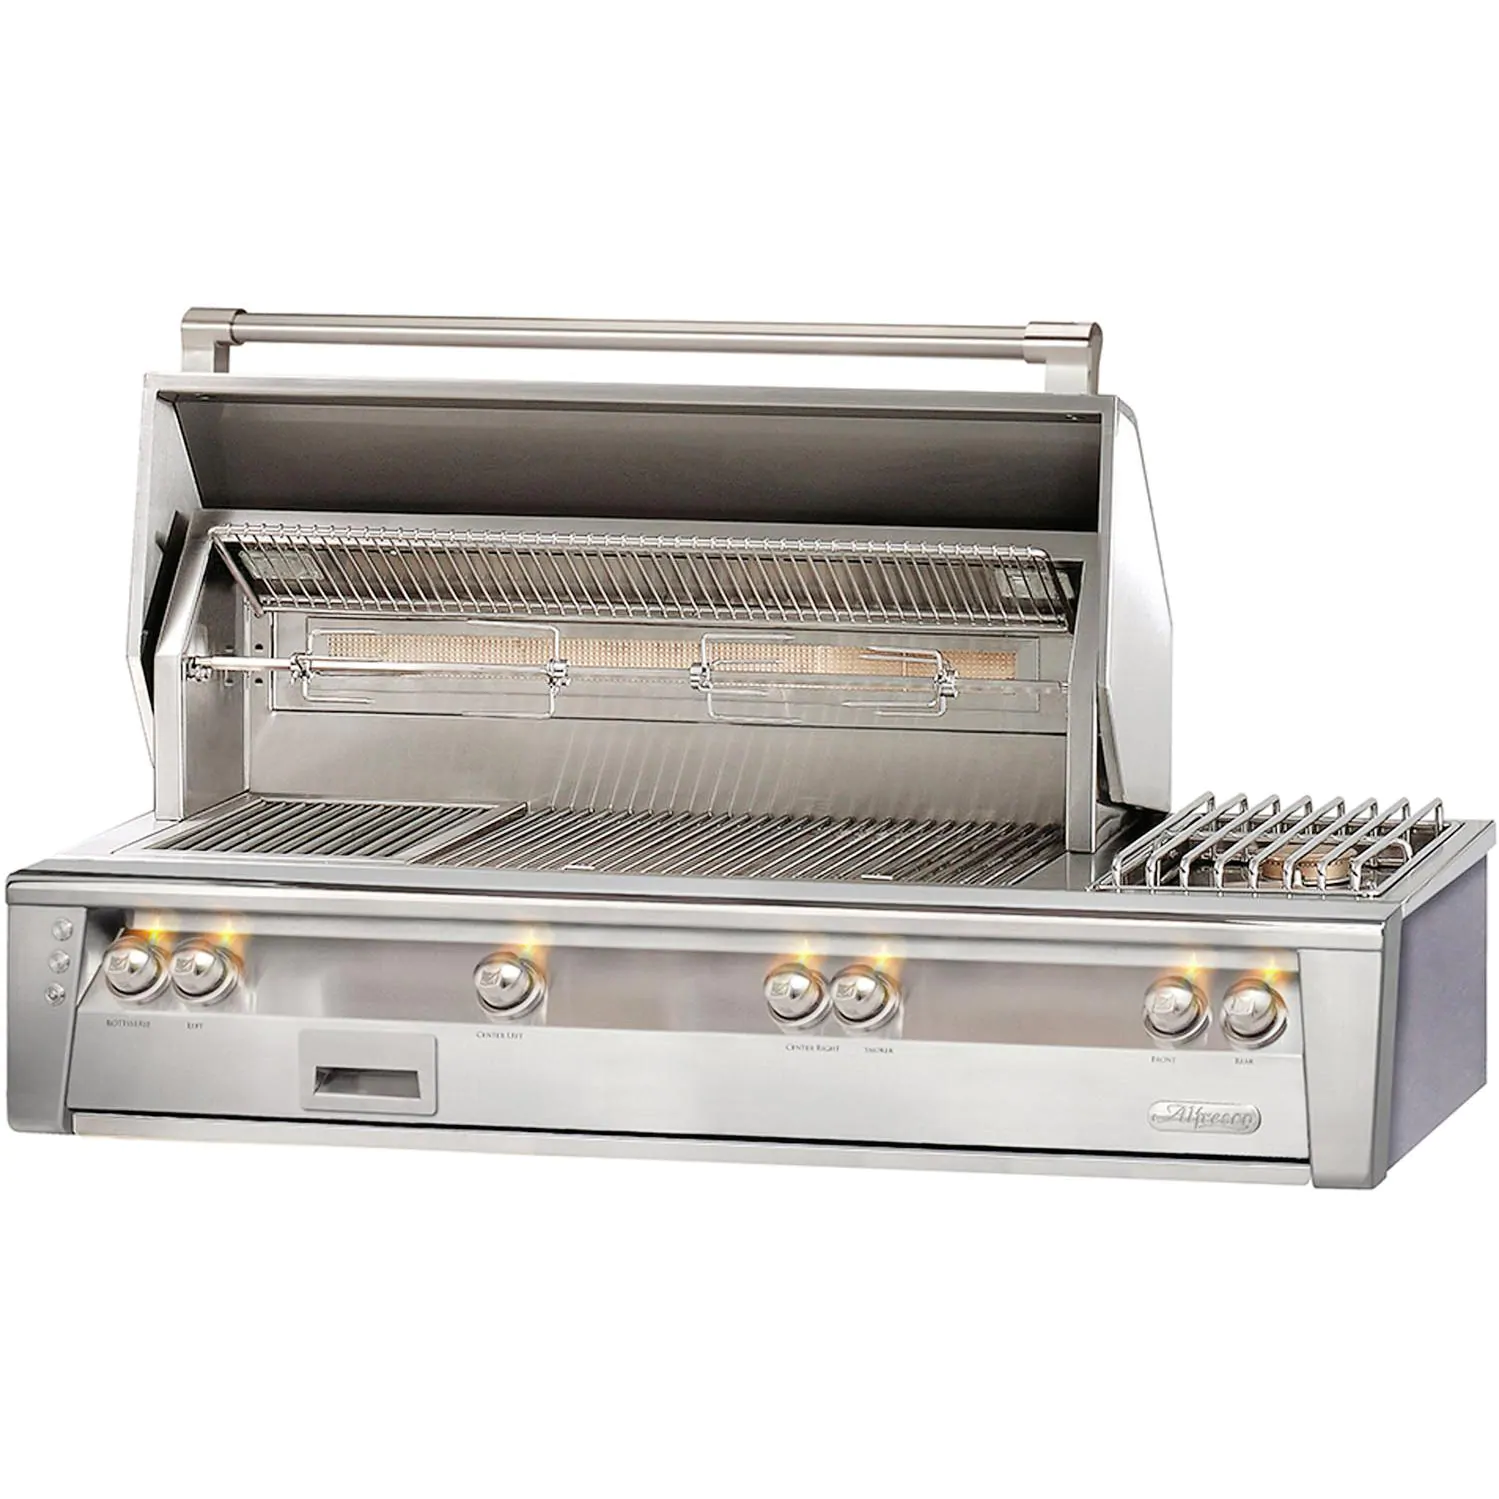 """Alfresco ALXE 56"""" Built-In Natural Gas Deluxe Grill With Sear Zone, Rotisserie, And Side Burner - ALXE-56SZ-NG"""